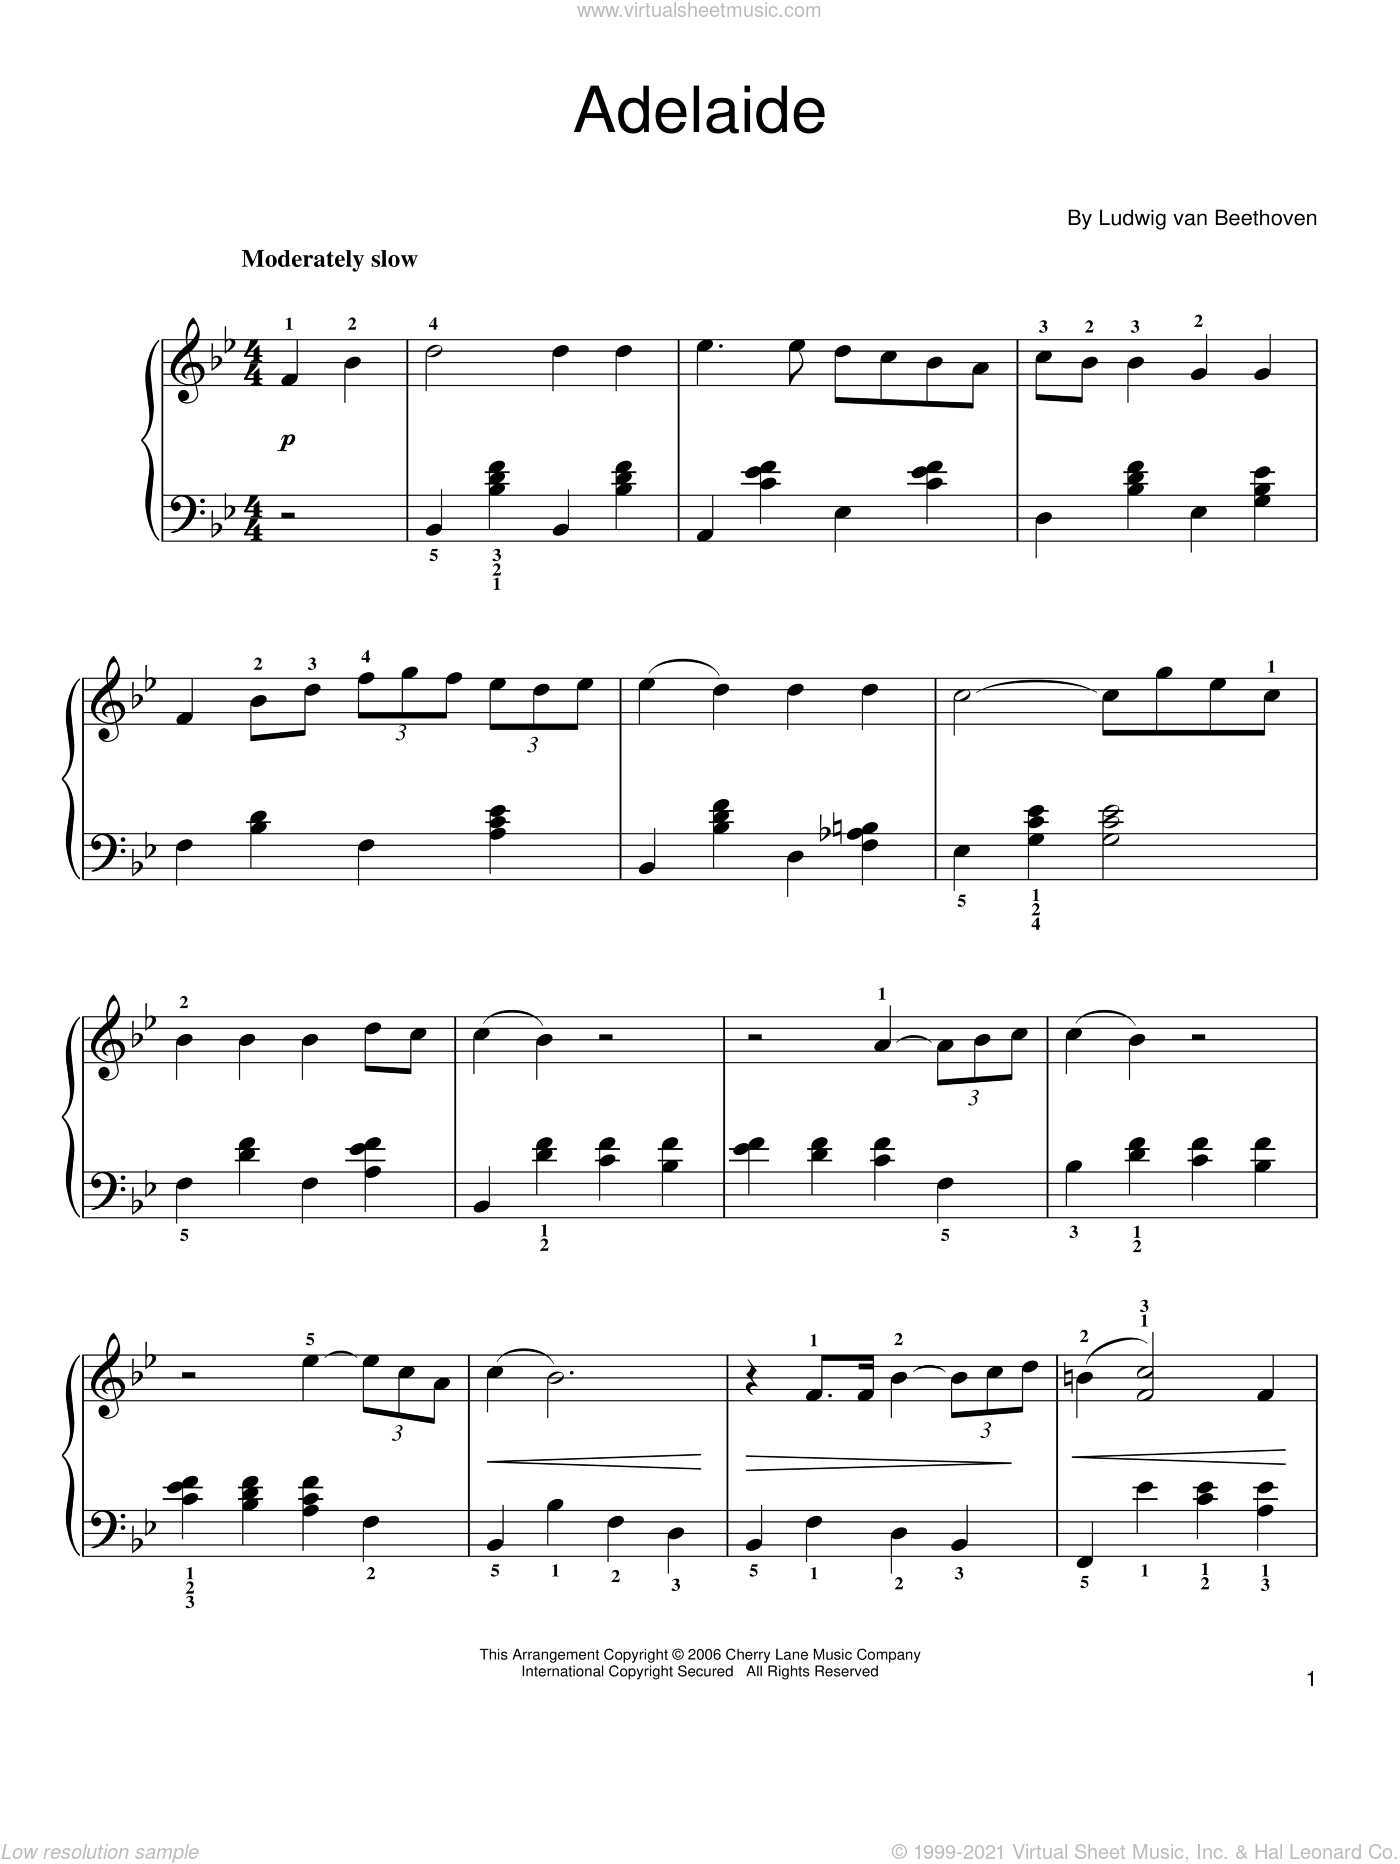 Adelaide, Op. 46 sheet music for piano solo by Ludwig van Beethoven, classical score, easy piano. Score Image Preview.